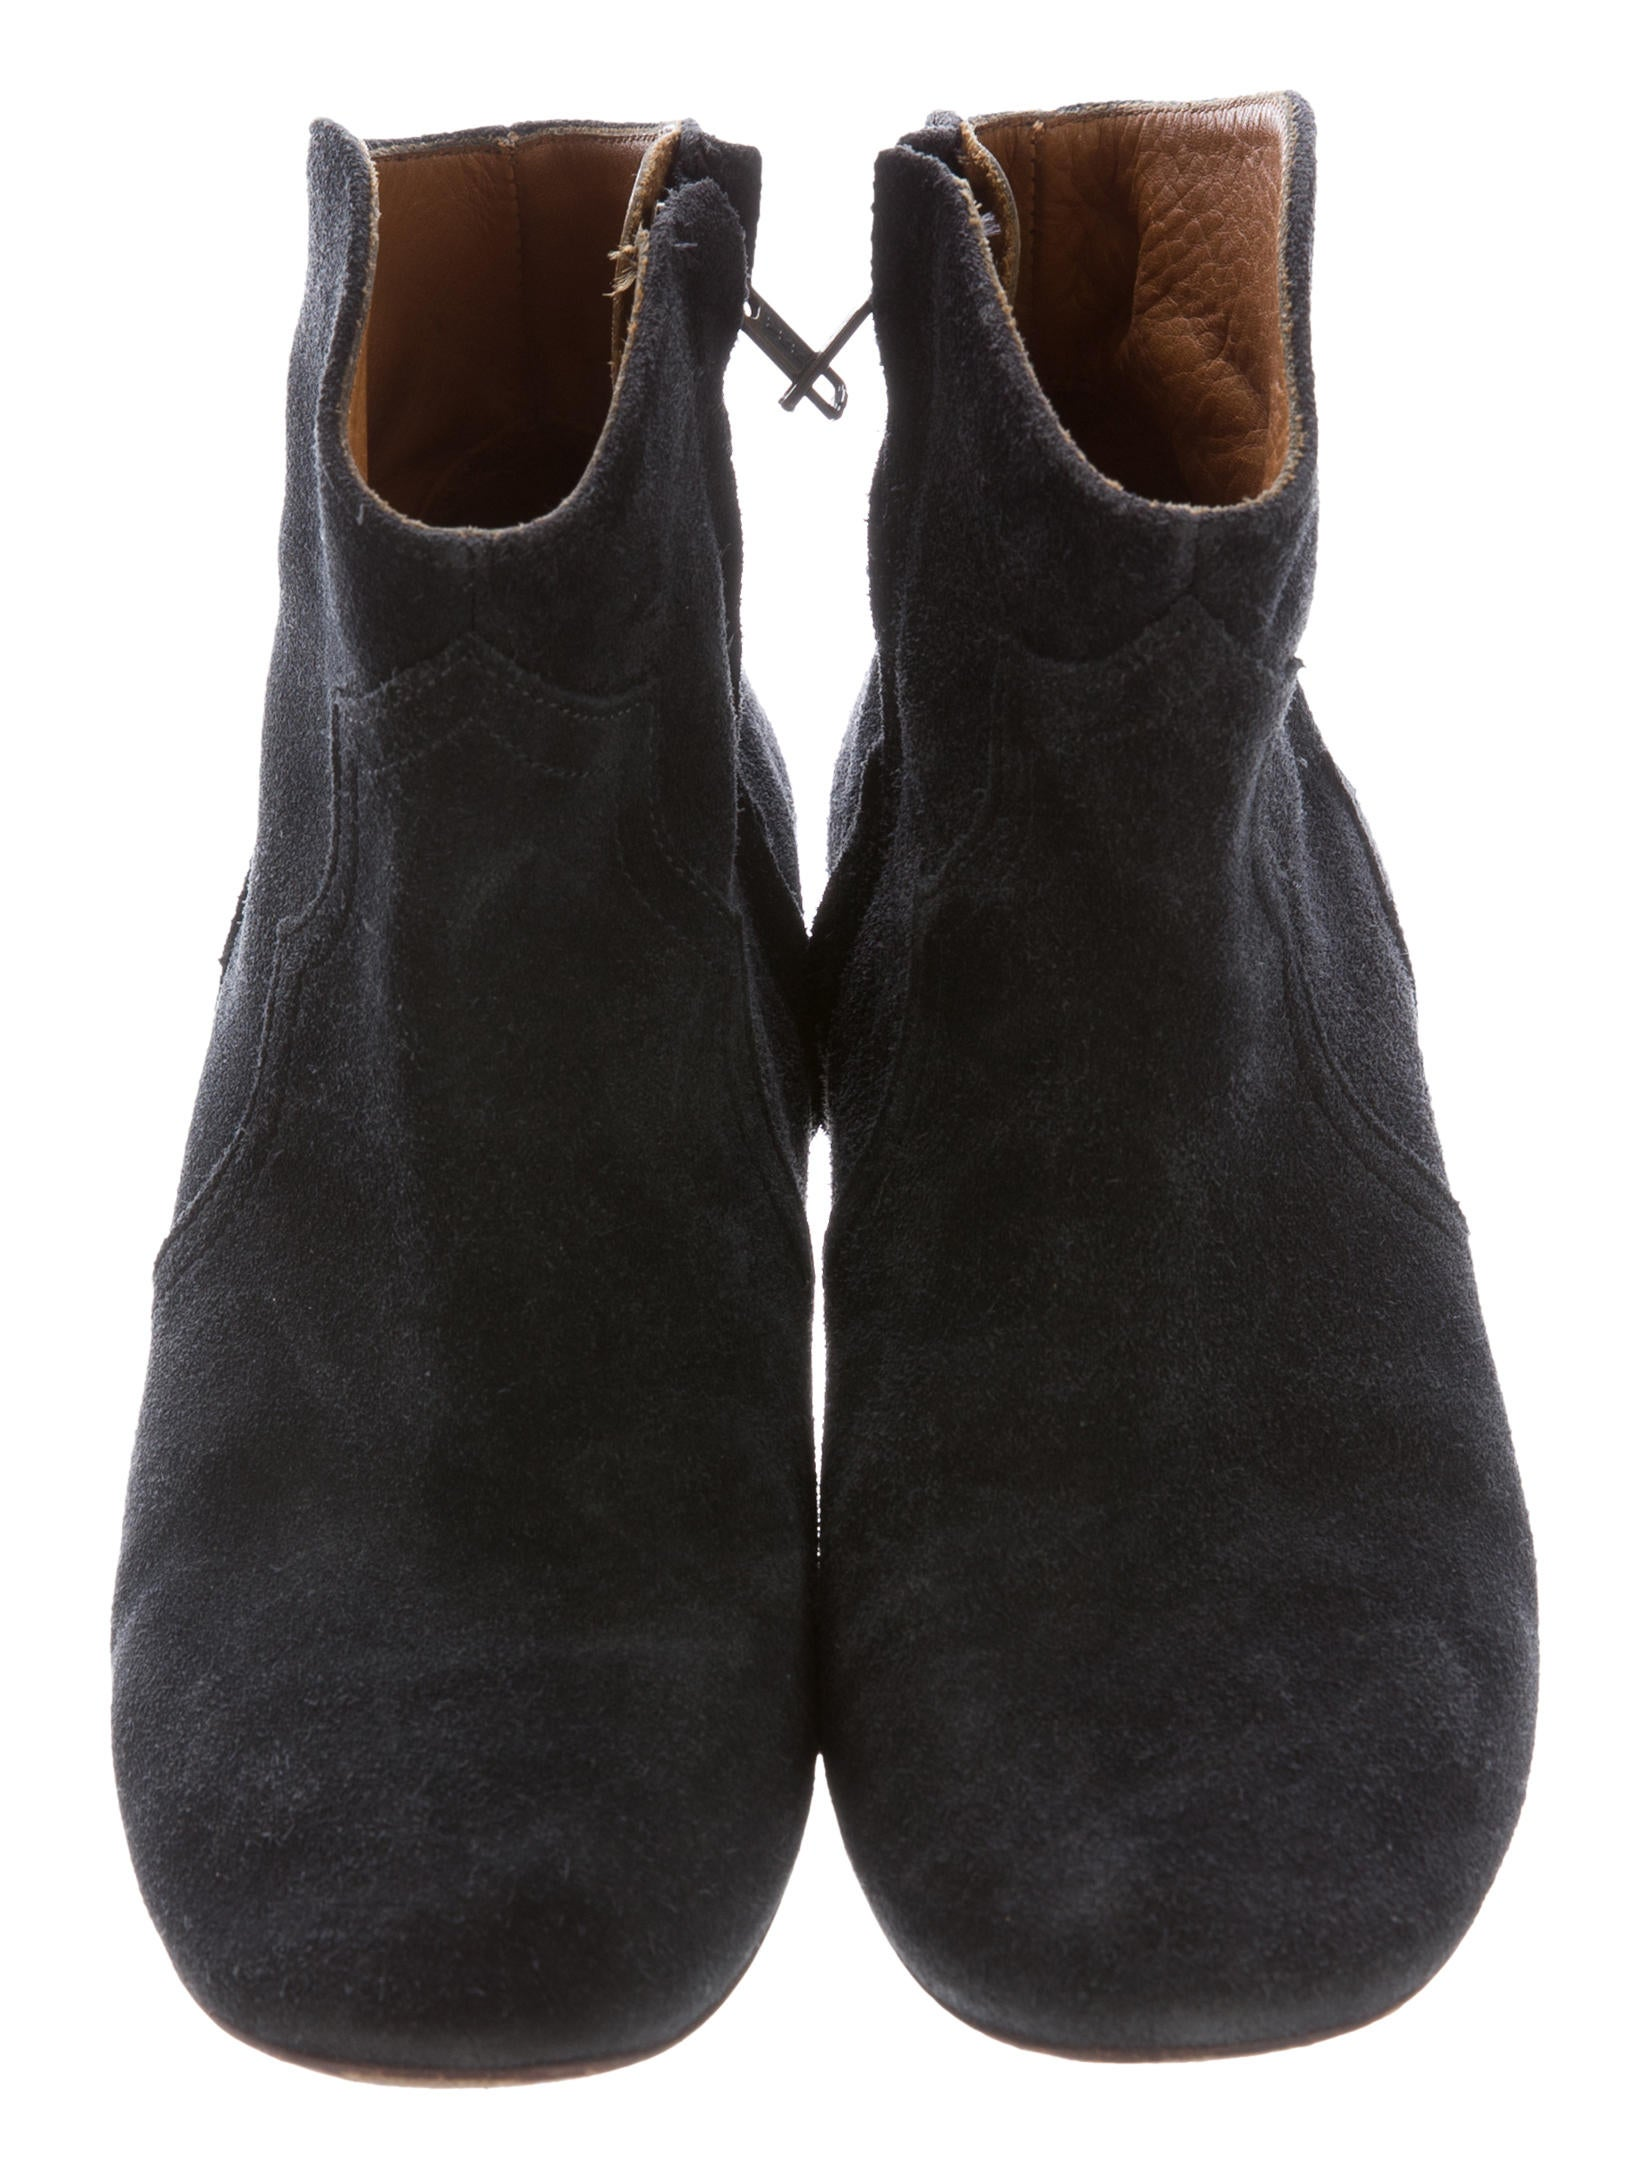 marant dicker suede ankle boots shoes isa43500